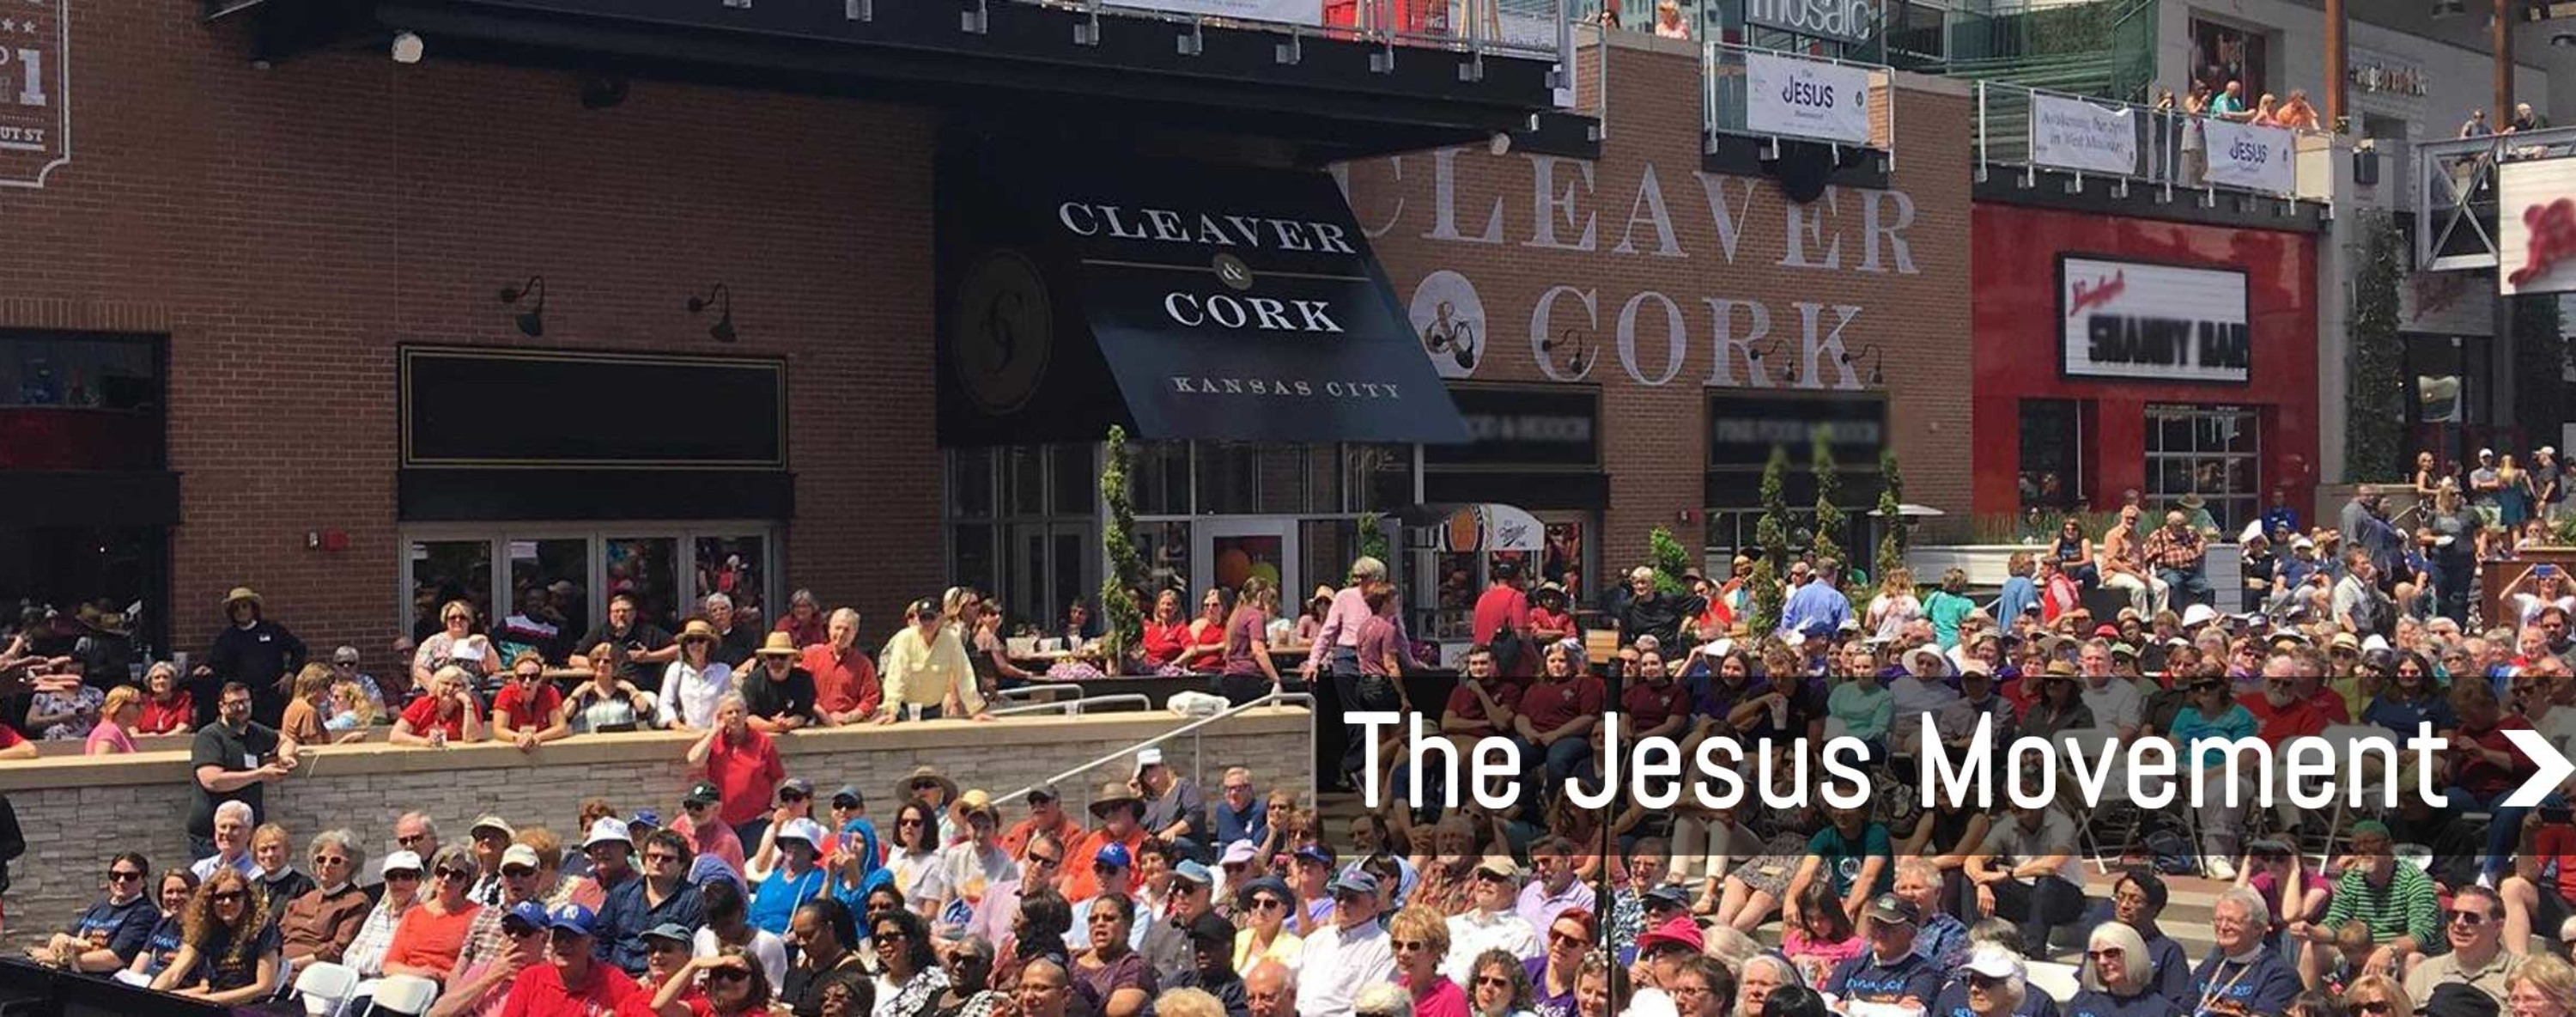 The Jesus Movement